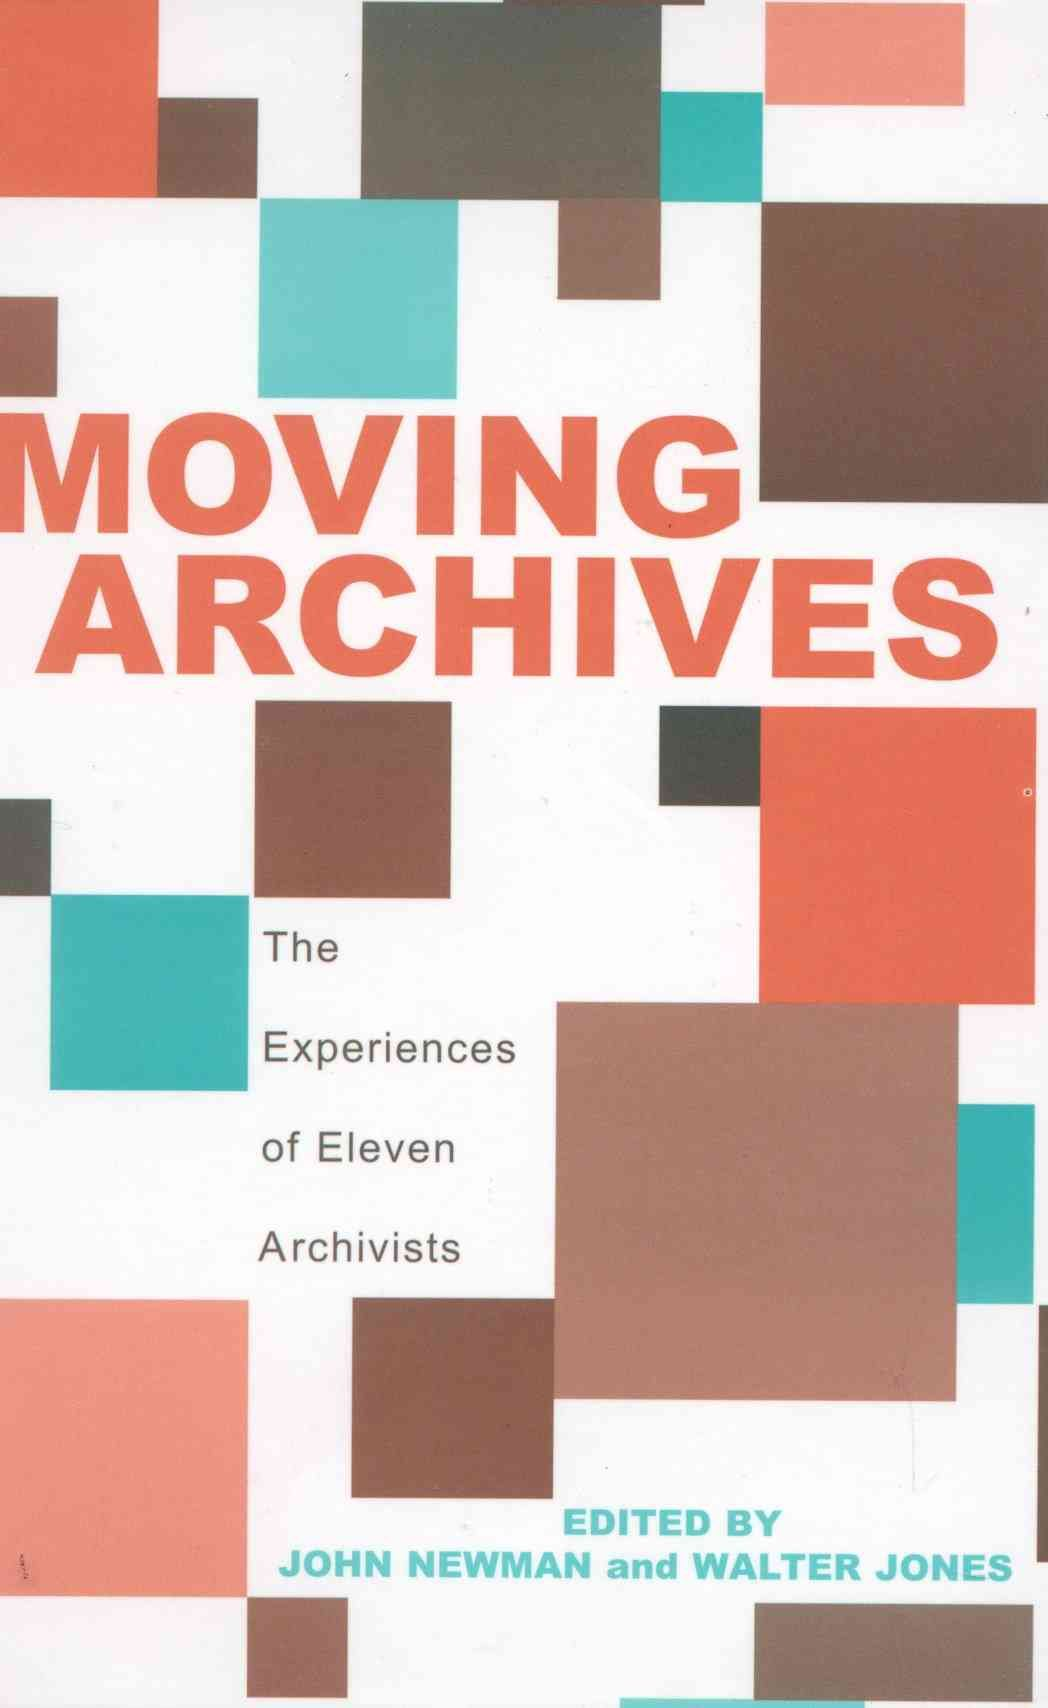 Moving Archives is a timely source of useful information by eleven archivists…